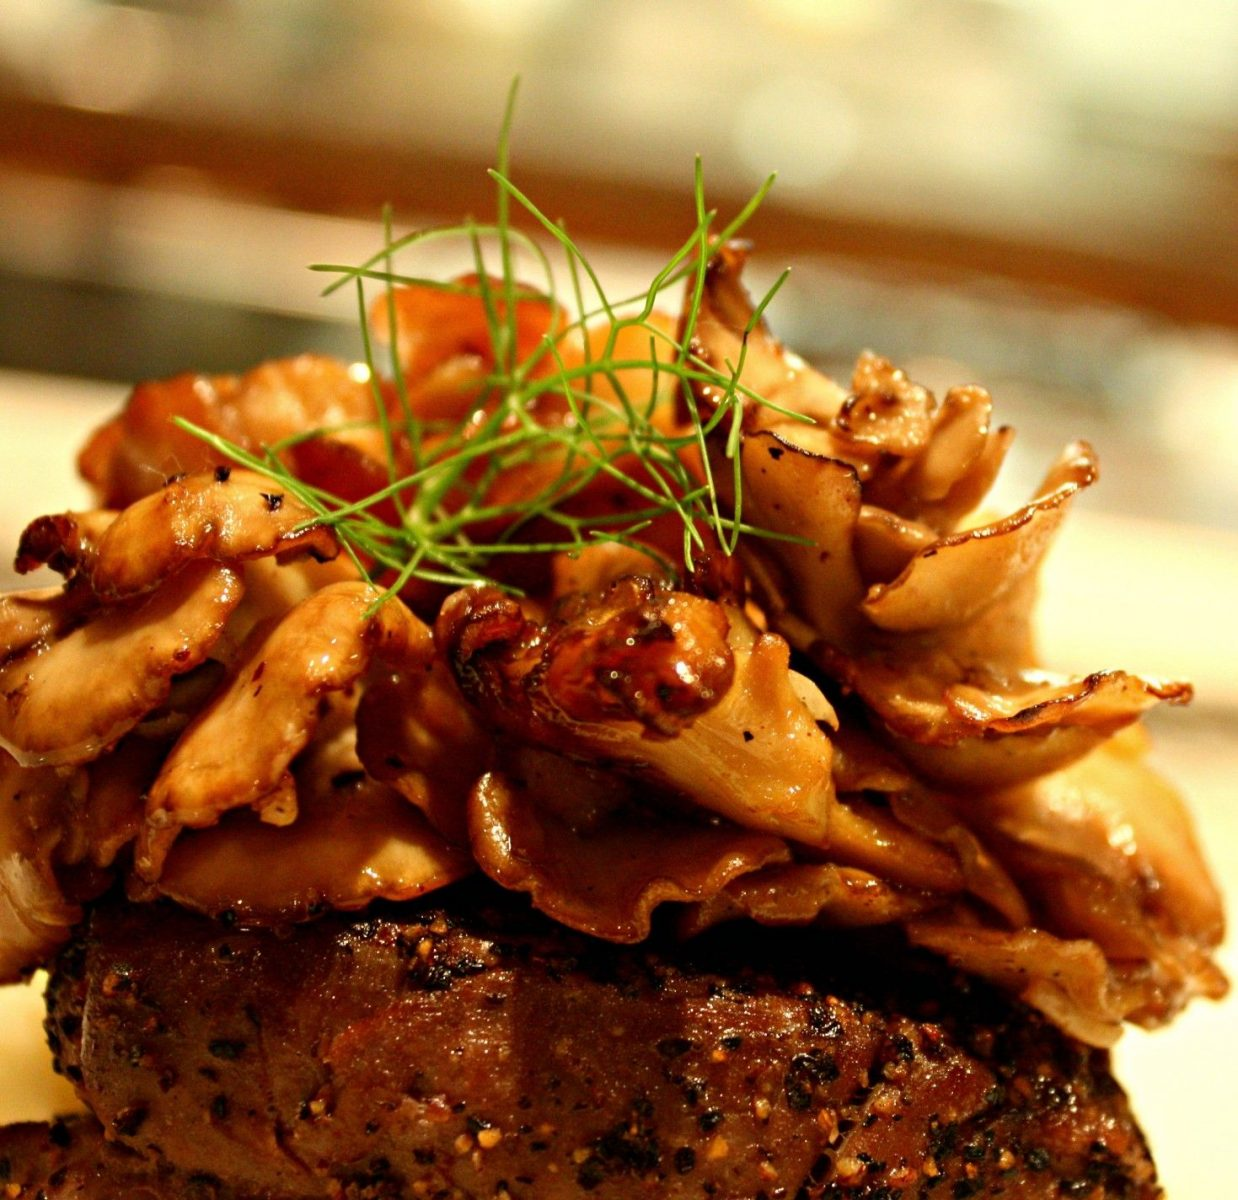 Filet-of-Beef-Tenderloin-served-with-a-giant-Hen-of-the-woods-mushroom-basted-in-butter_